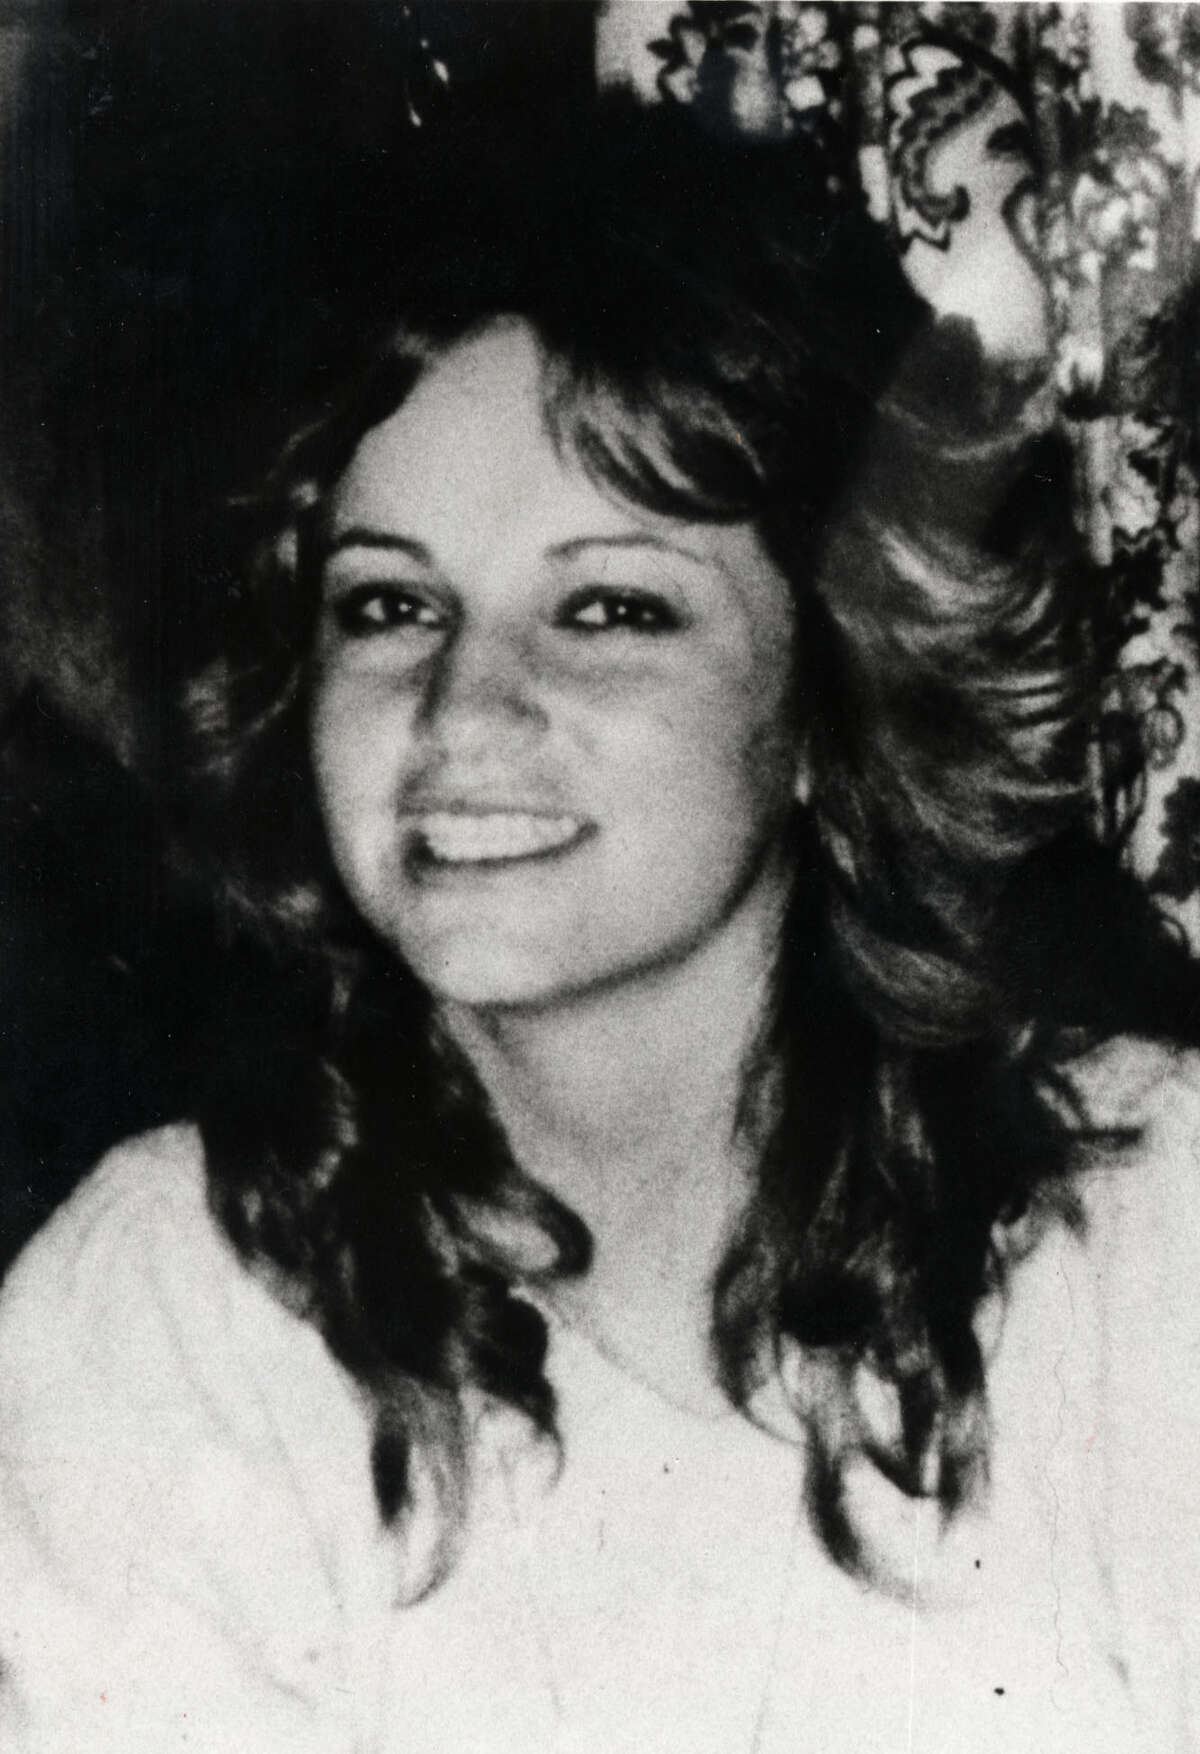 Debora Sue Schatz is shown in this undated family photo.David Isador Port abducted and killed the 23-year-old postal worker in 1984.